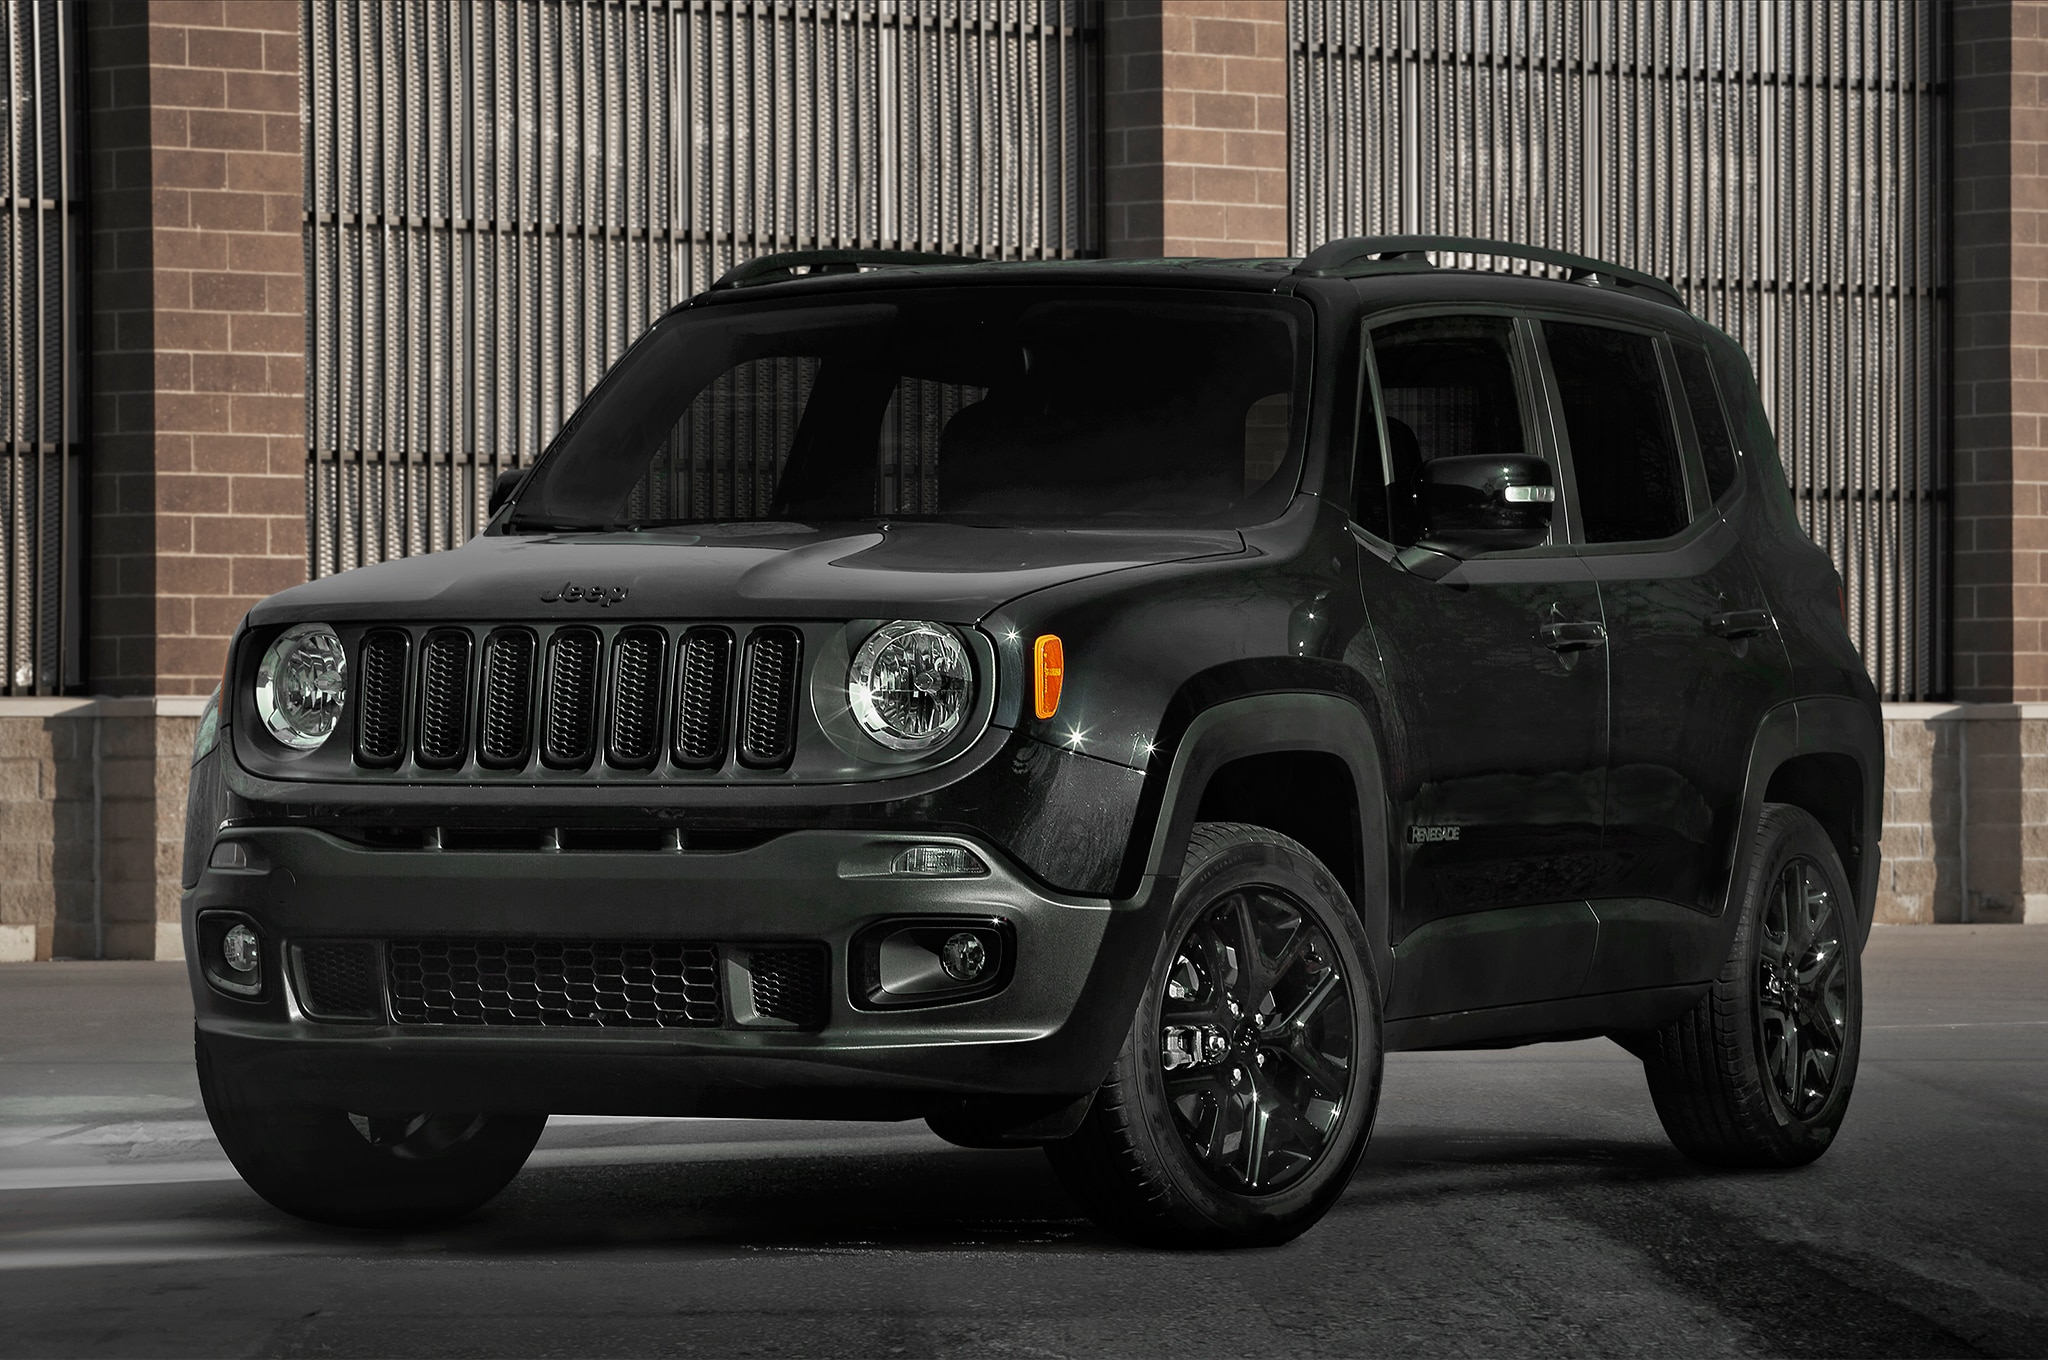 jeep presentar dos nuevos modelos del renegade 2017 motor trend en espa ol. Black Bedroom Furniture Sets. Home Design Ideas